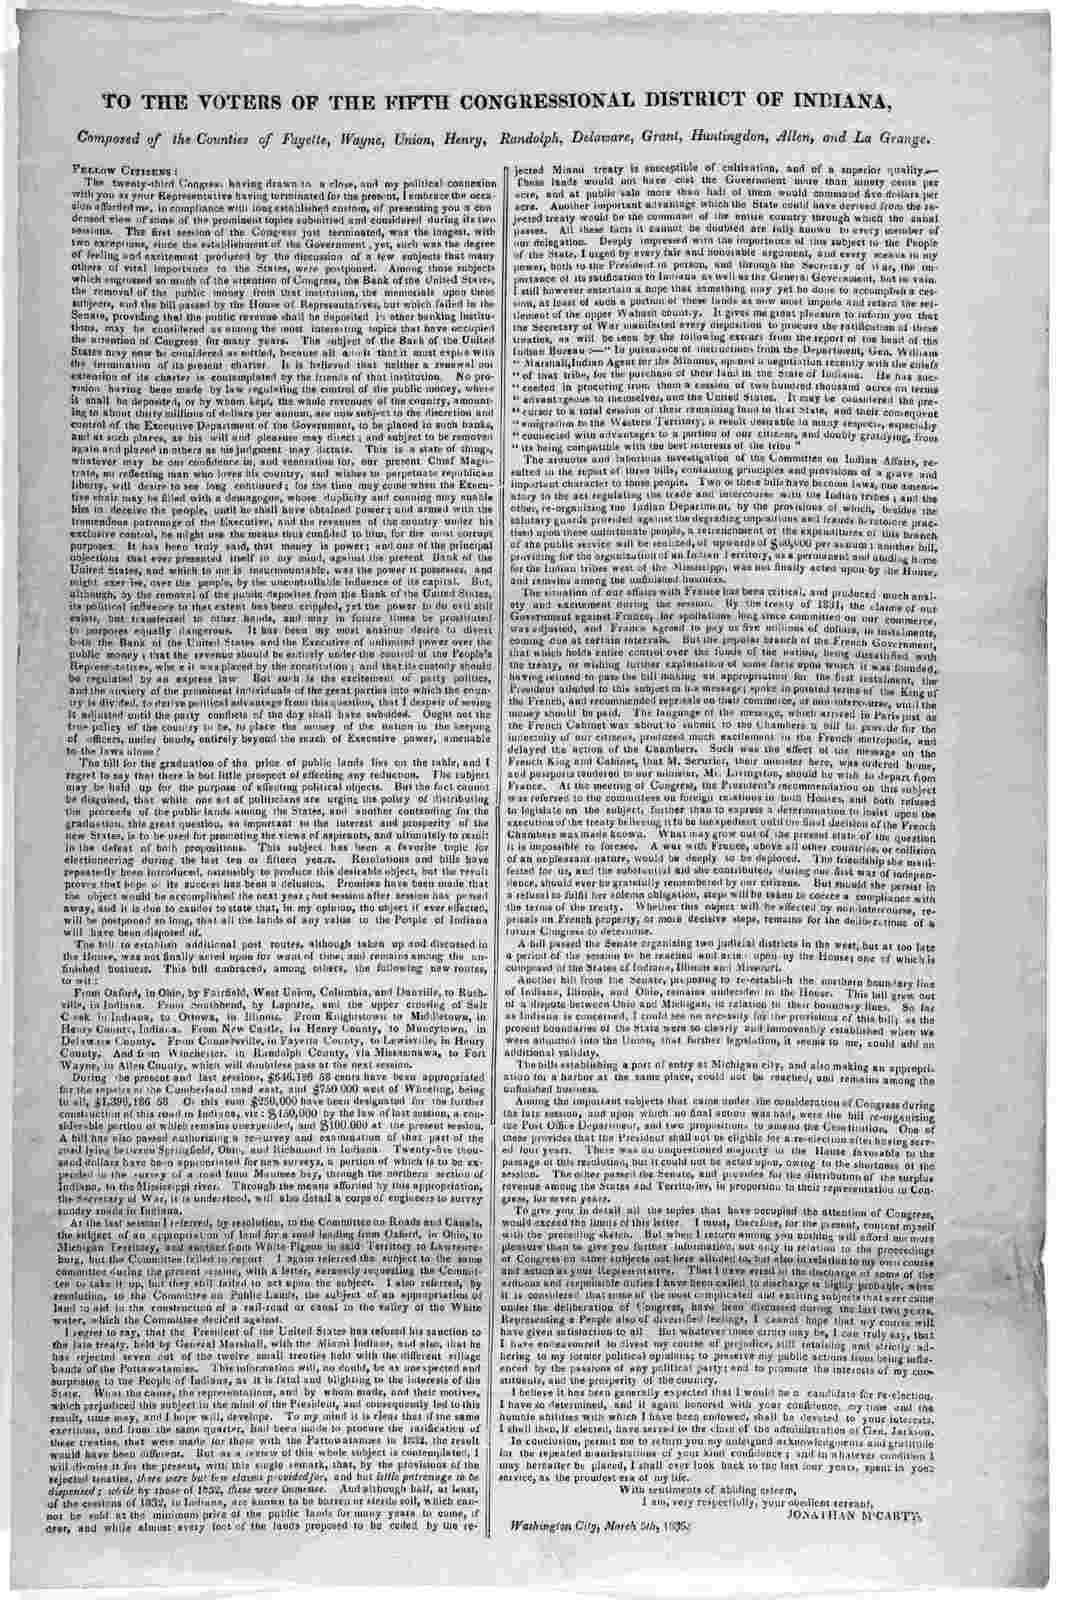 To the voters of the fifth Congressional district of Indiana. Composed of the counties of Fayette, Wayne, Union, Henry, Randolph, Delaware, Grant, Huntington, Allen and La Grange ... Jonathan M'Carty, Washington City, March 5th 1835.